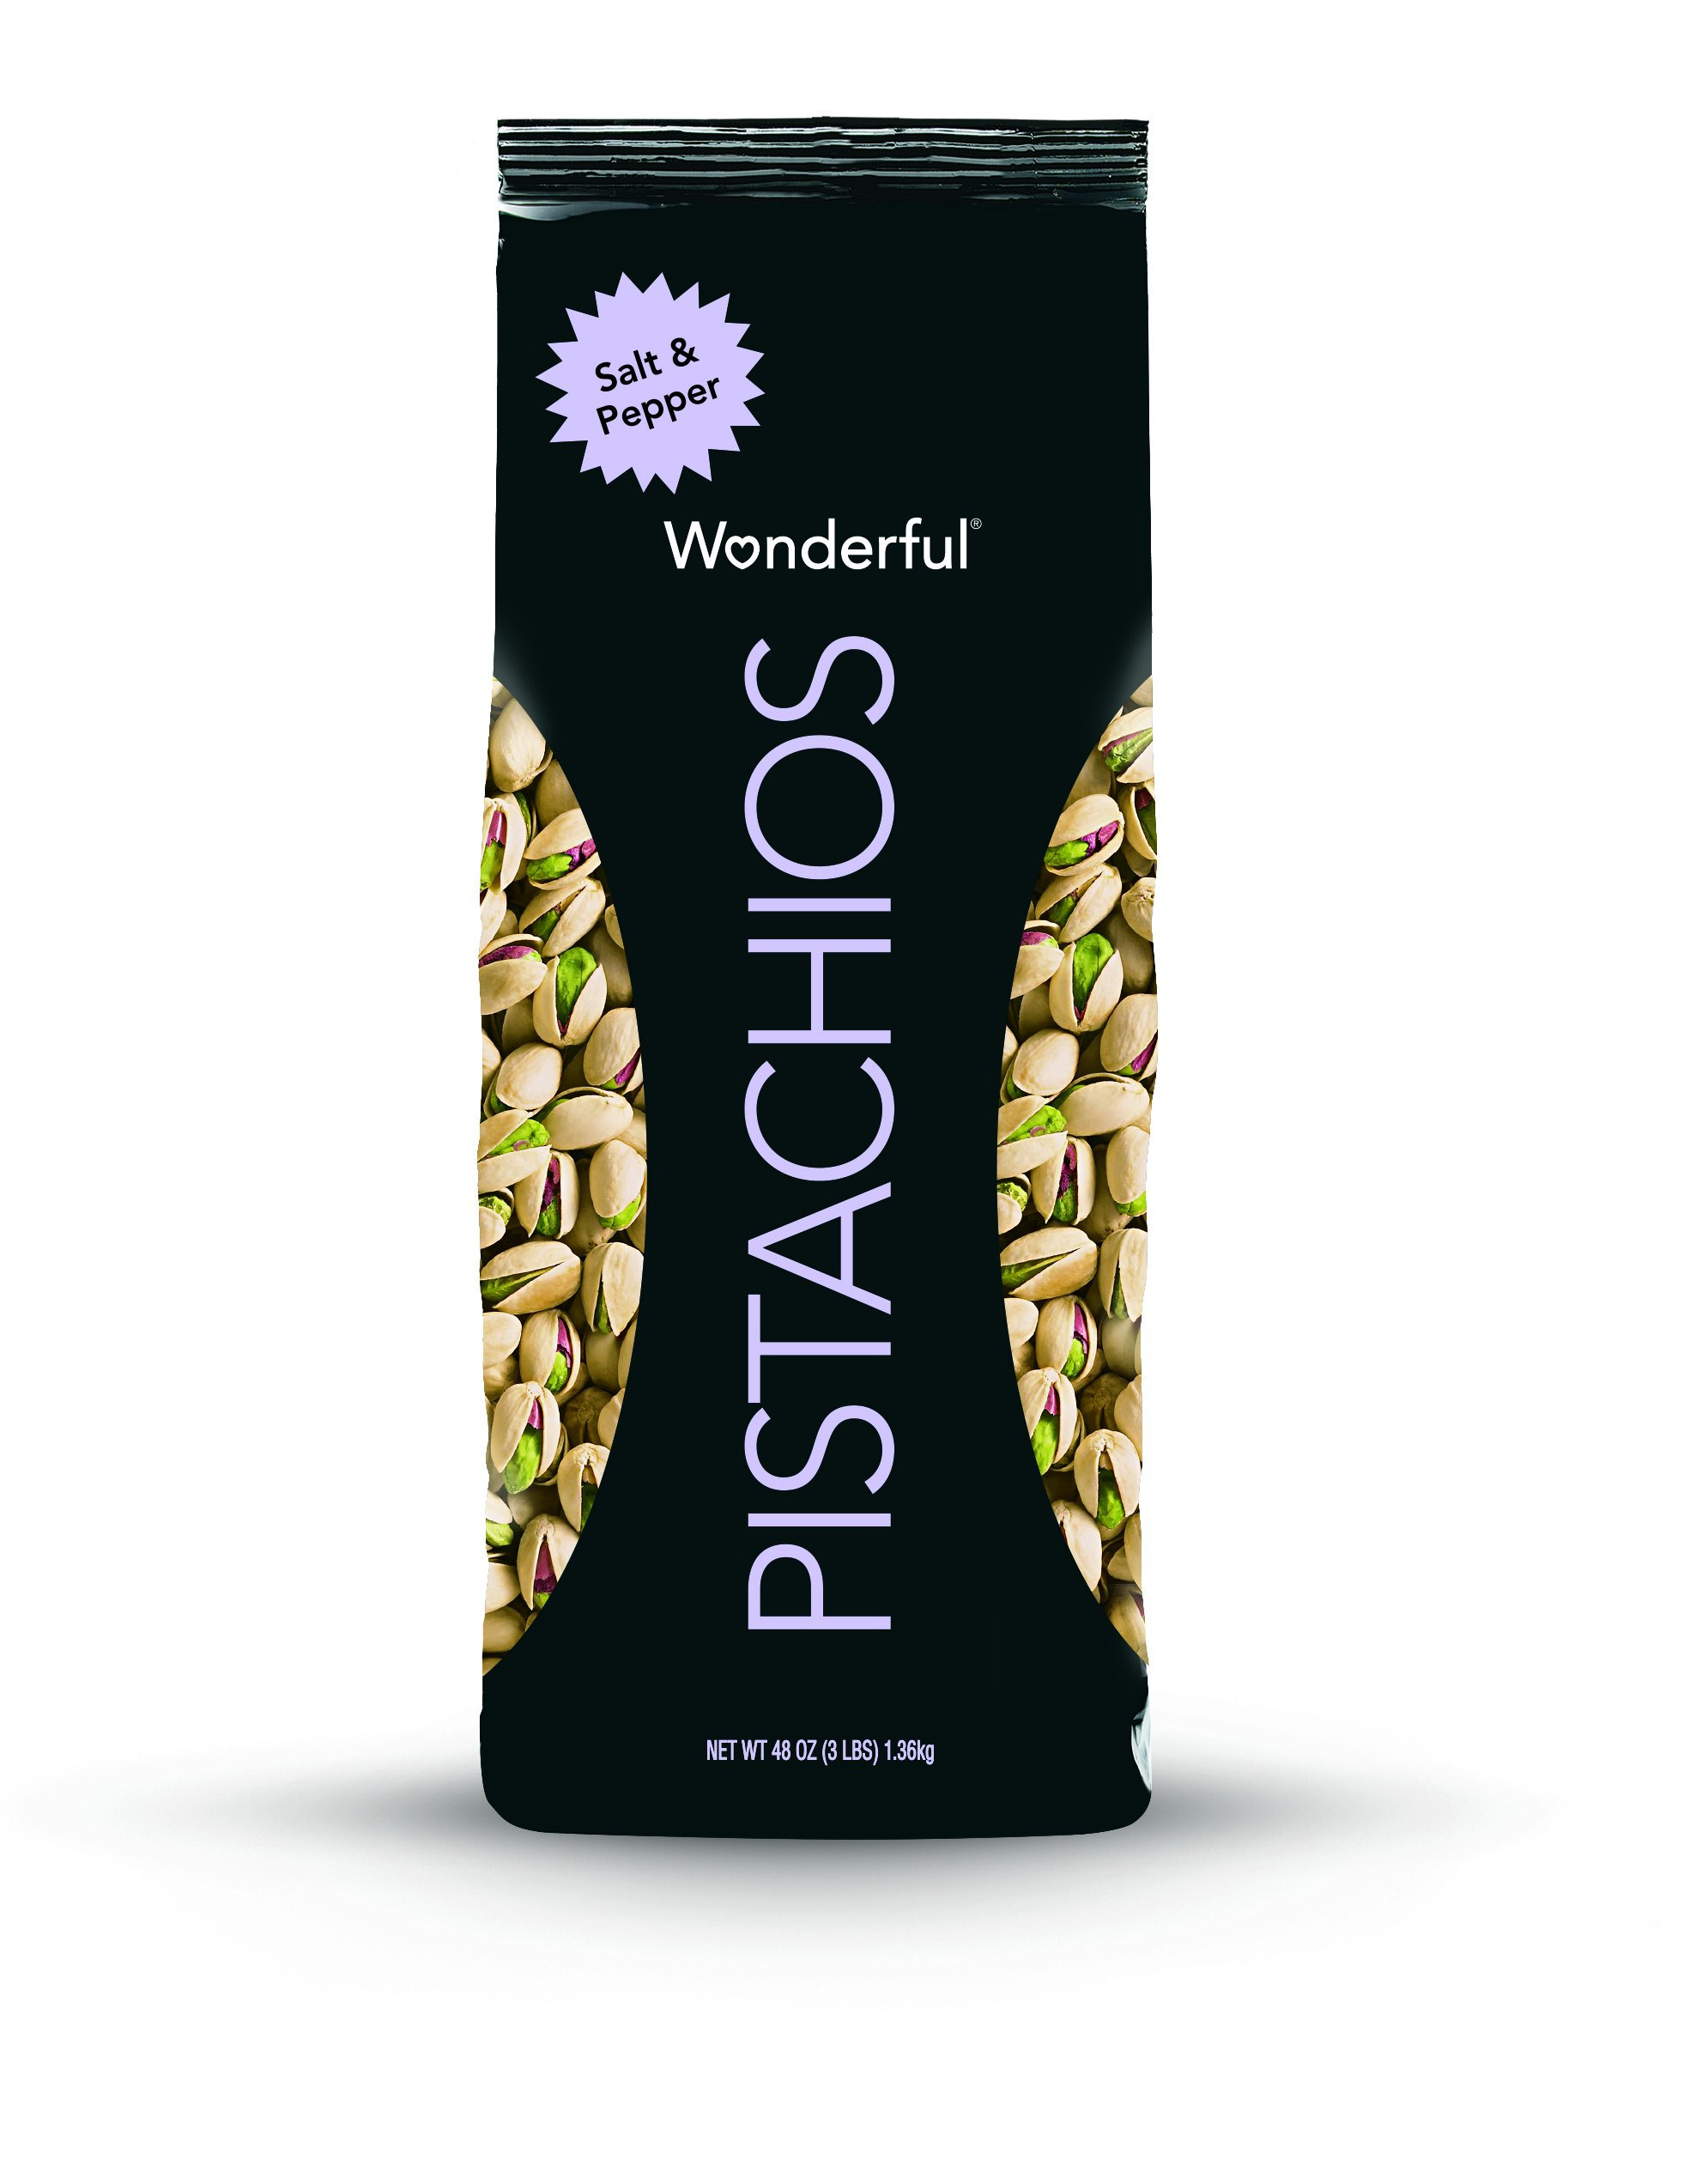 Wonderful Pistachios, Salt and Pepper Flavor, 48 Ounce Bag by Wonderful Pistachios & Almonds